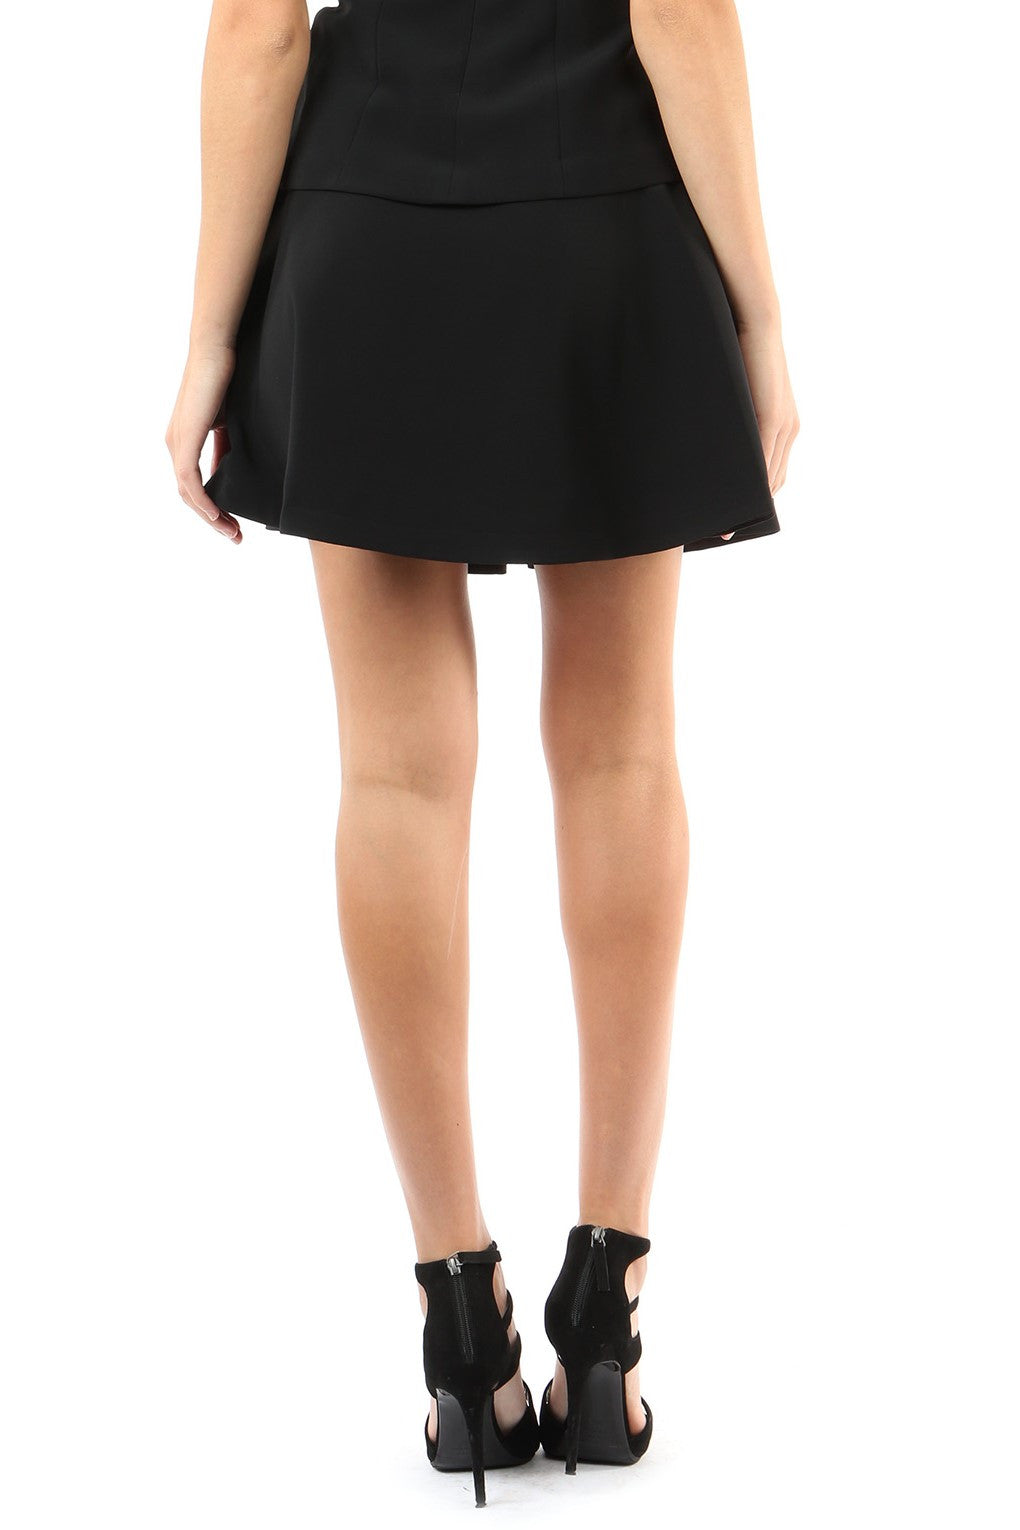 Jay Godfrey Black Pleated Mini Skirt - Back View